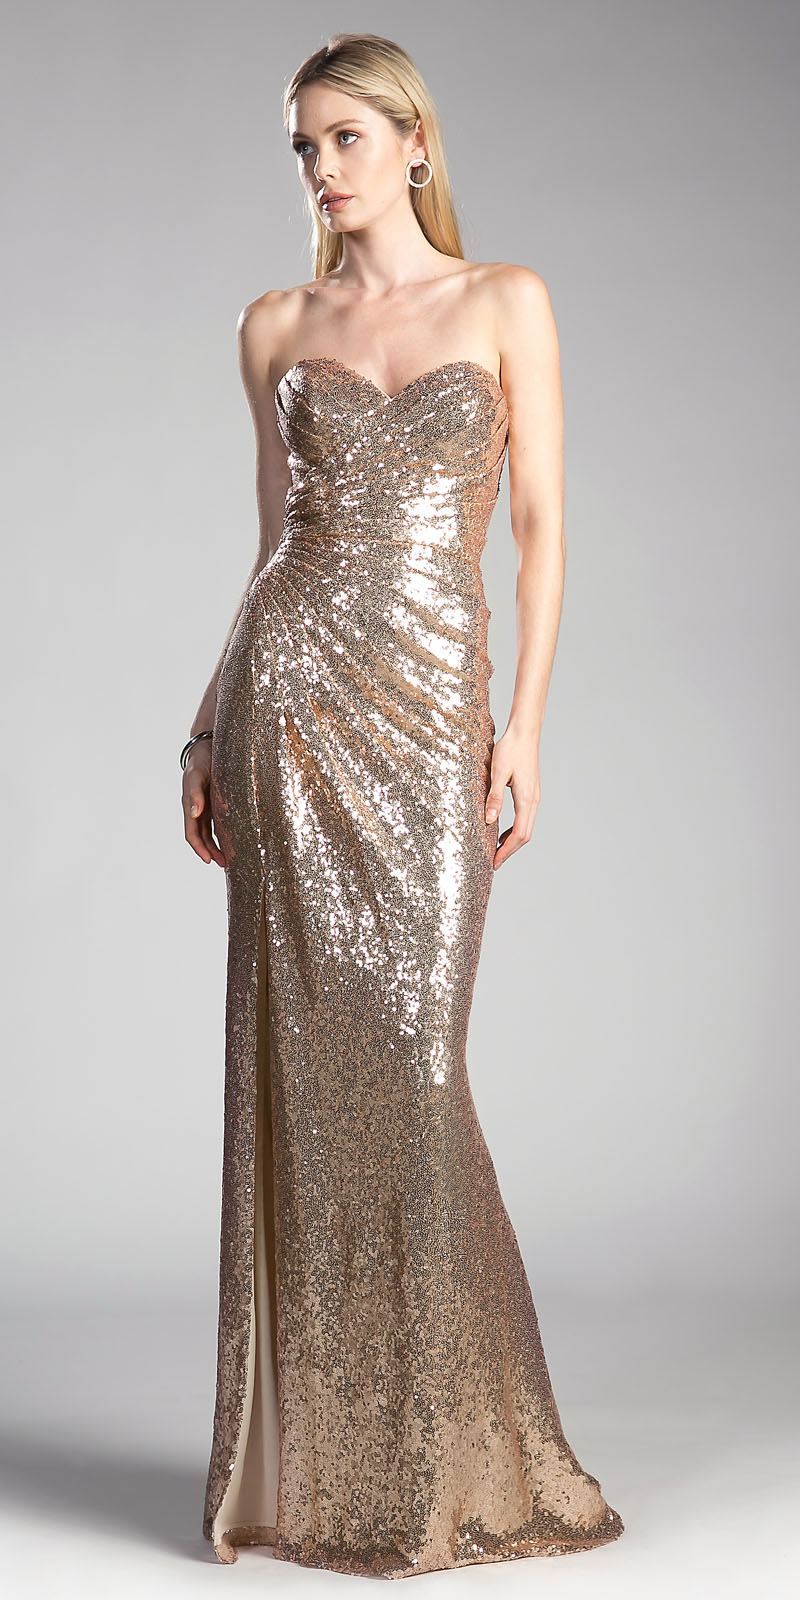 3dfd3e186197c Sequins Strapless Long Prom Dress Sweetheart Neckline Champagne. Touch to  zoom